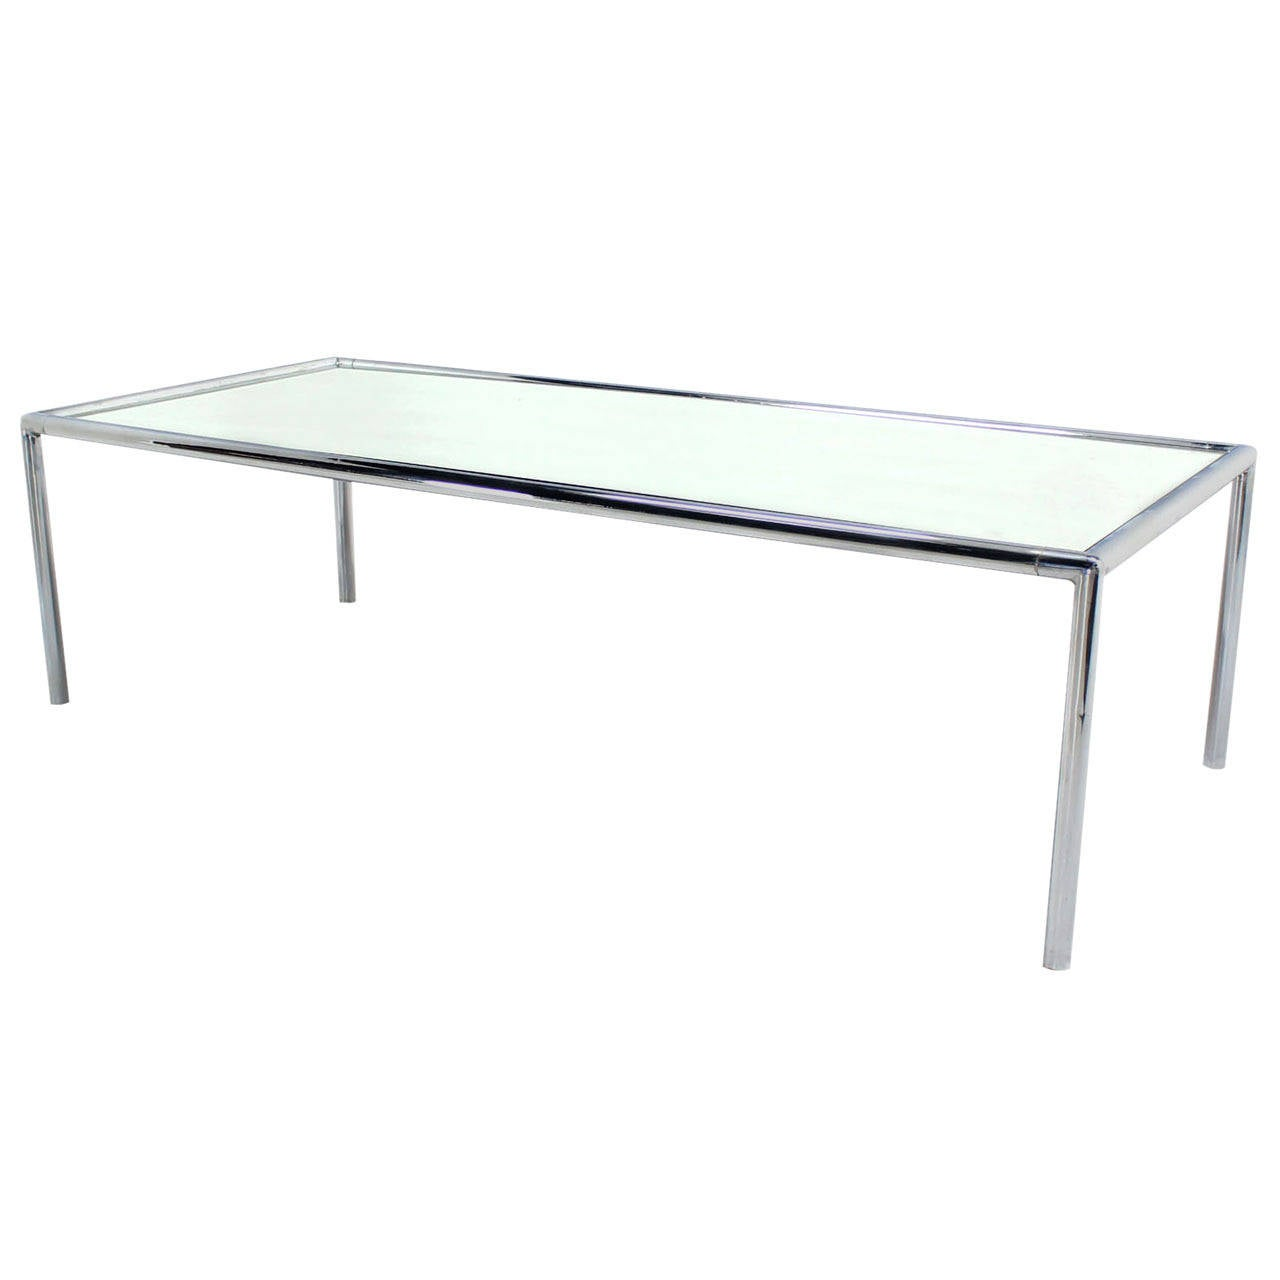 Extra Long Chrome Tubular Design Dining Or Conference